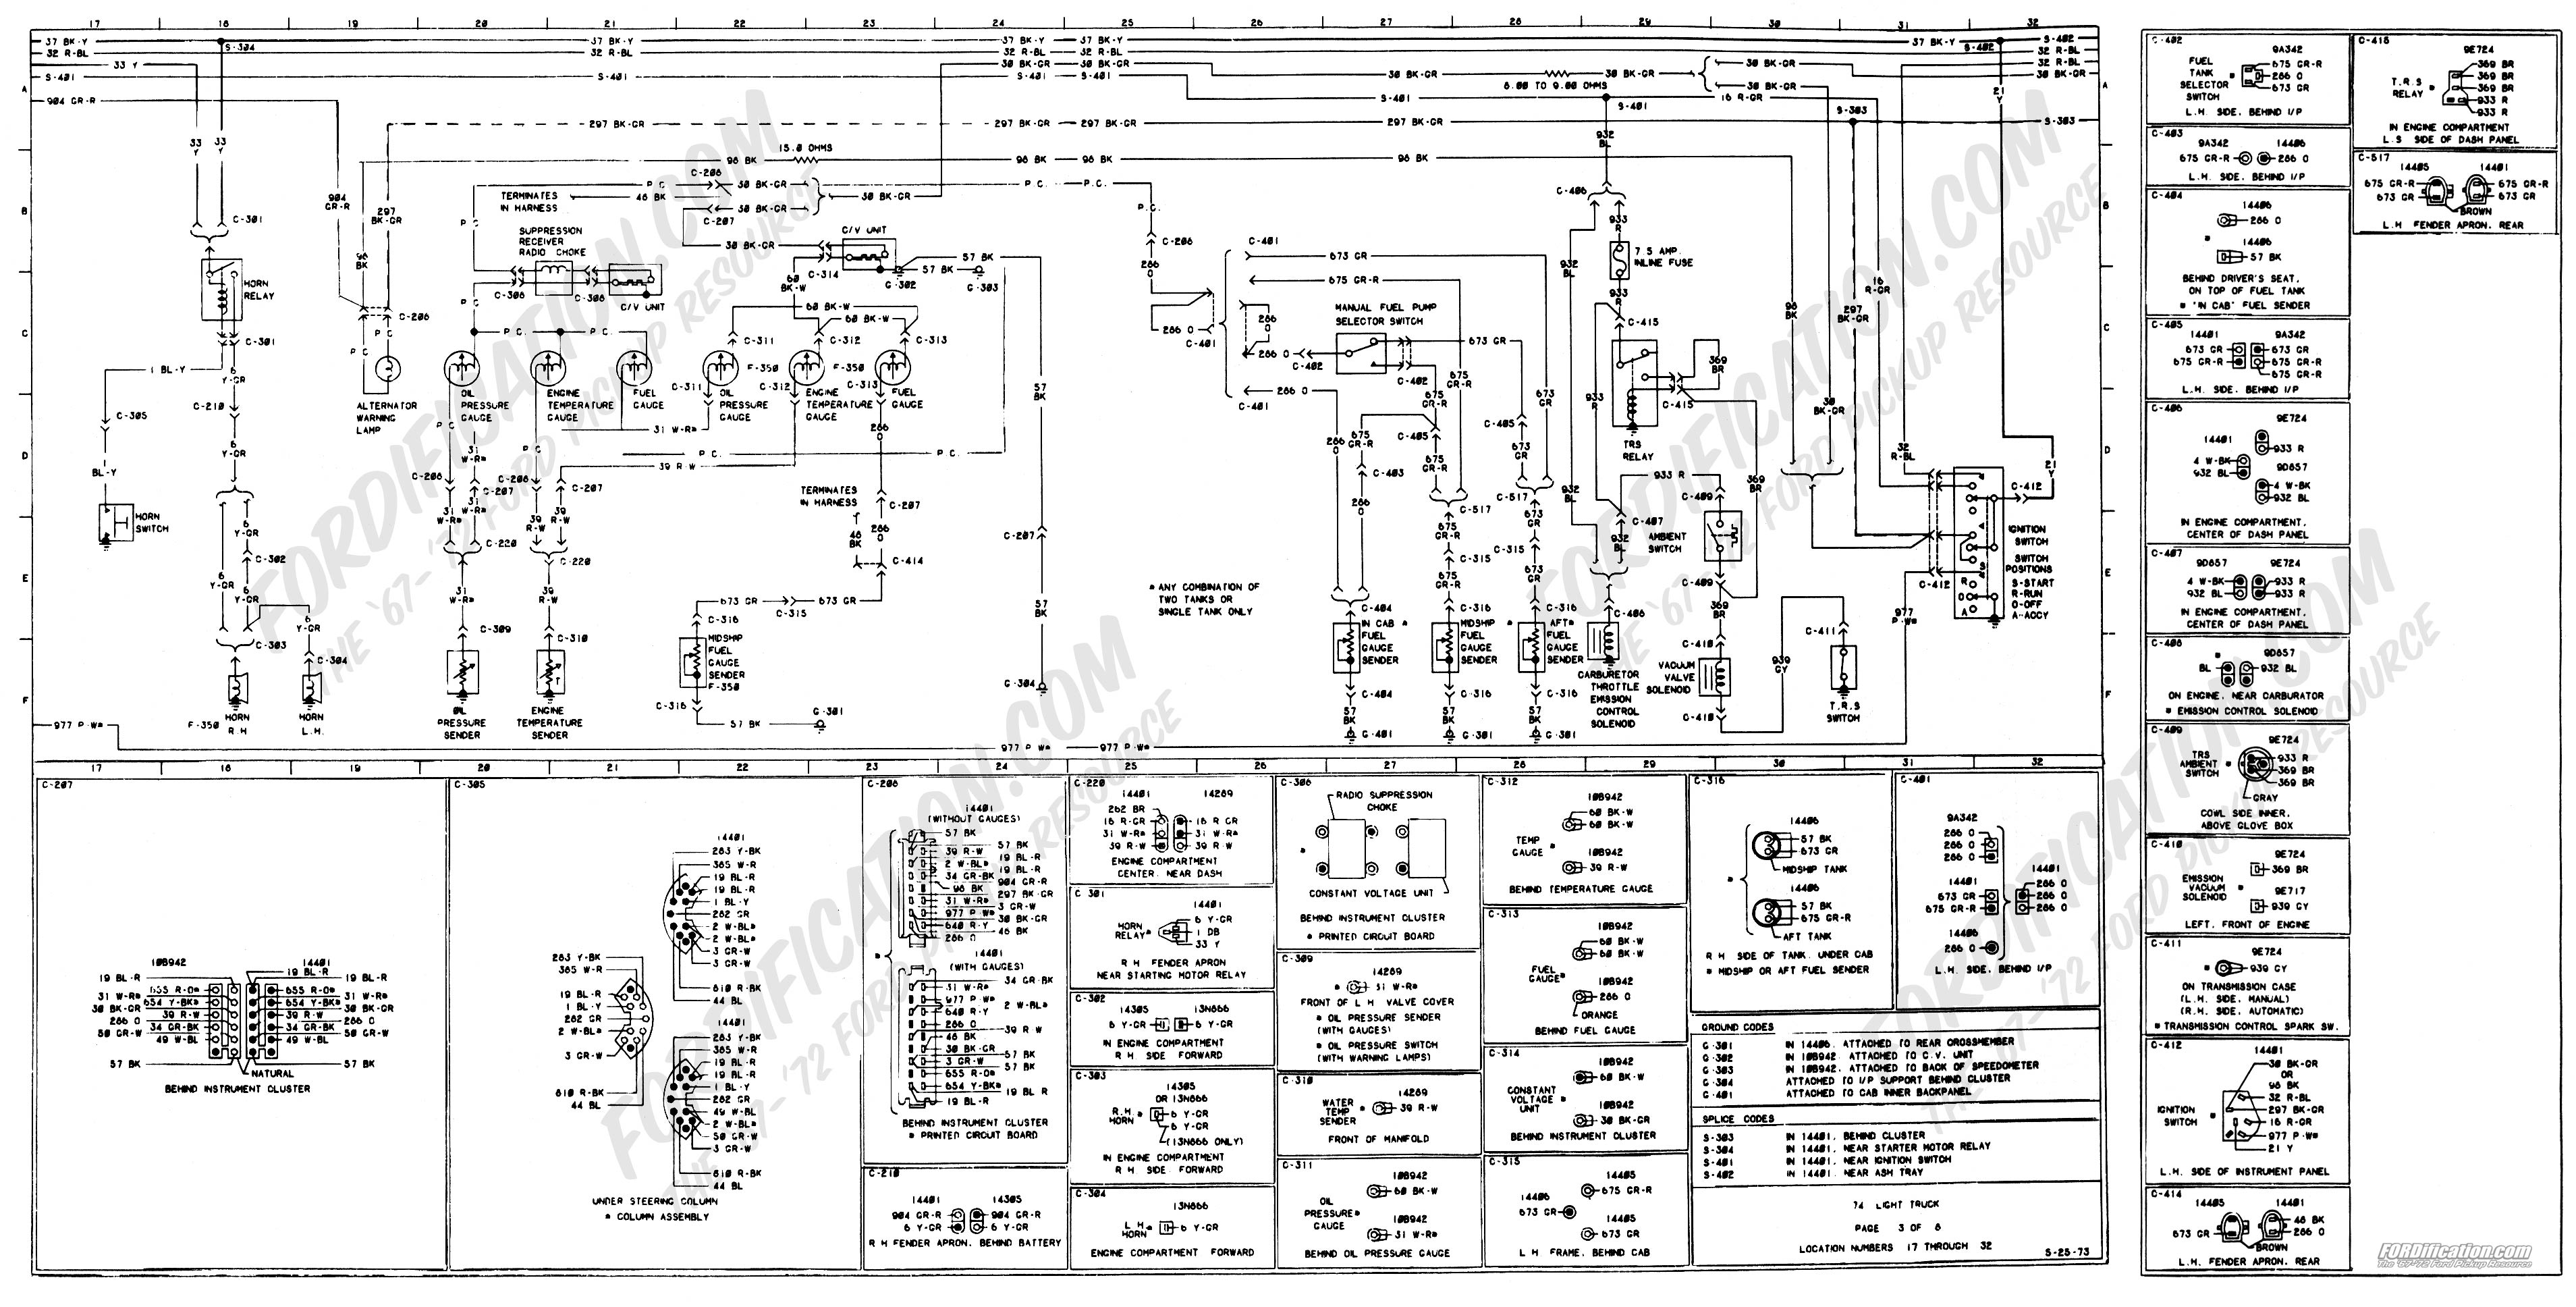 wiring_74master_3of8 1973 1979 ford truck wiring diagrams & schematics fordification net ford transit wiring diagram at gsmx.co